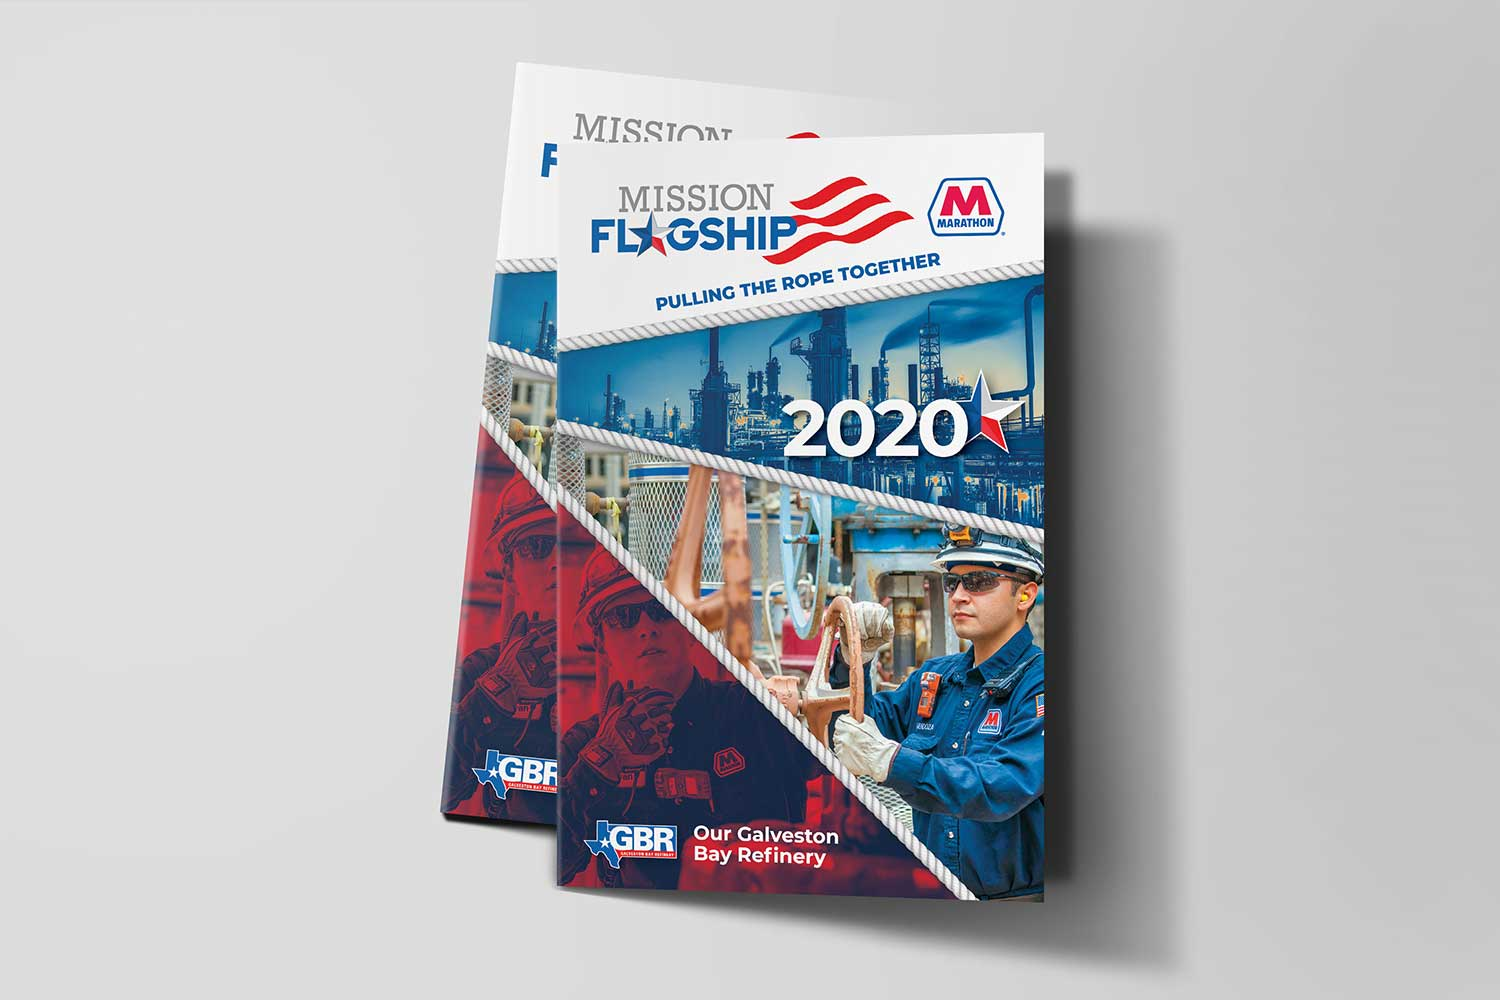 Design and printing of bi-fold brochure for Marathon Galveston Bay Refinery for marketing event.